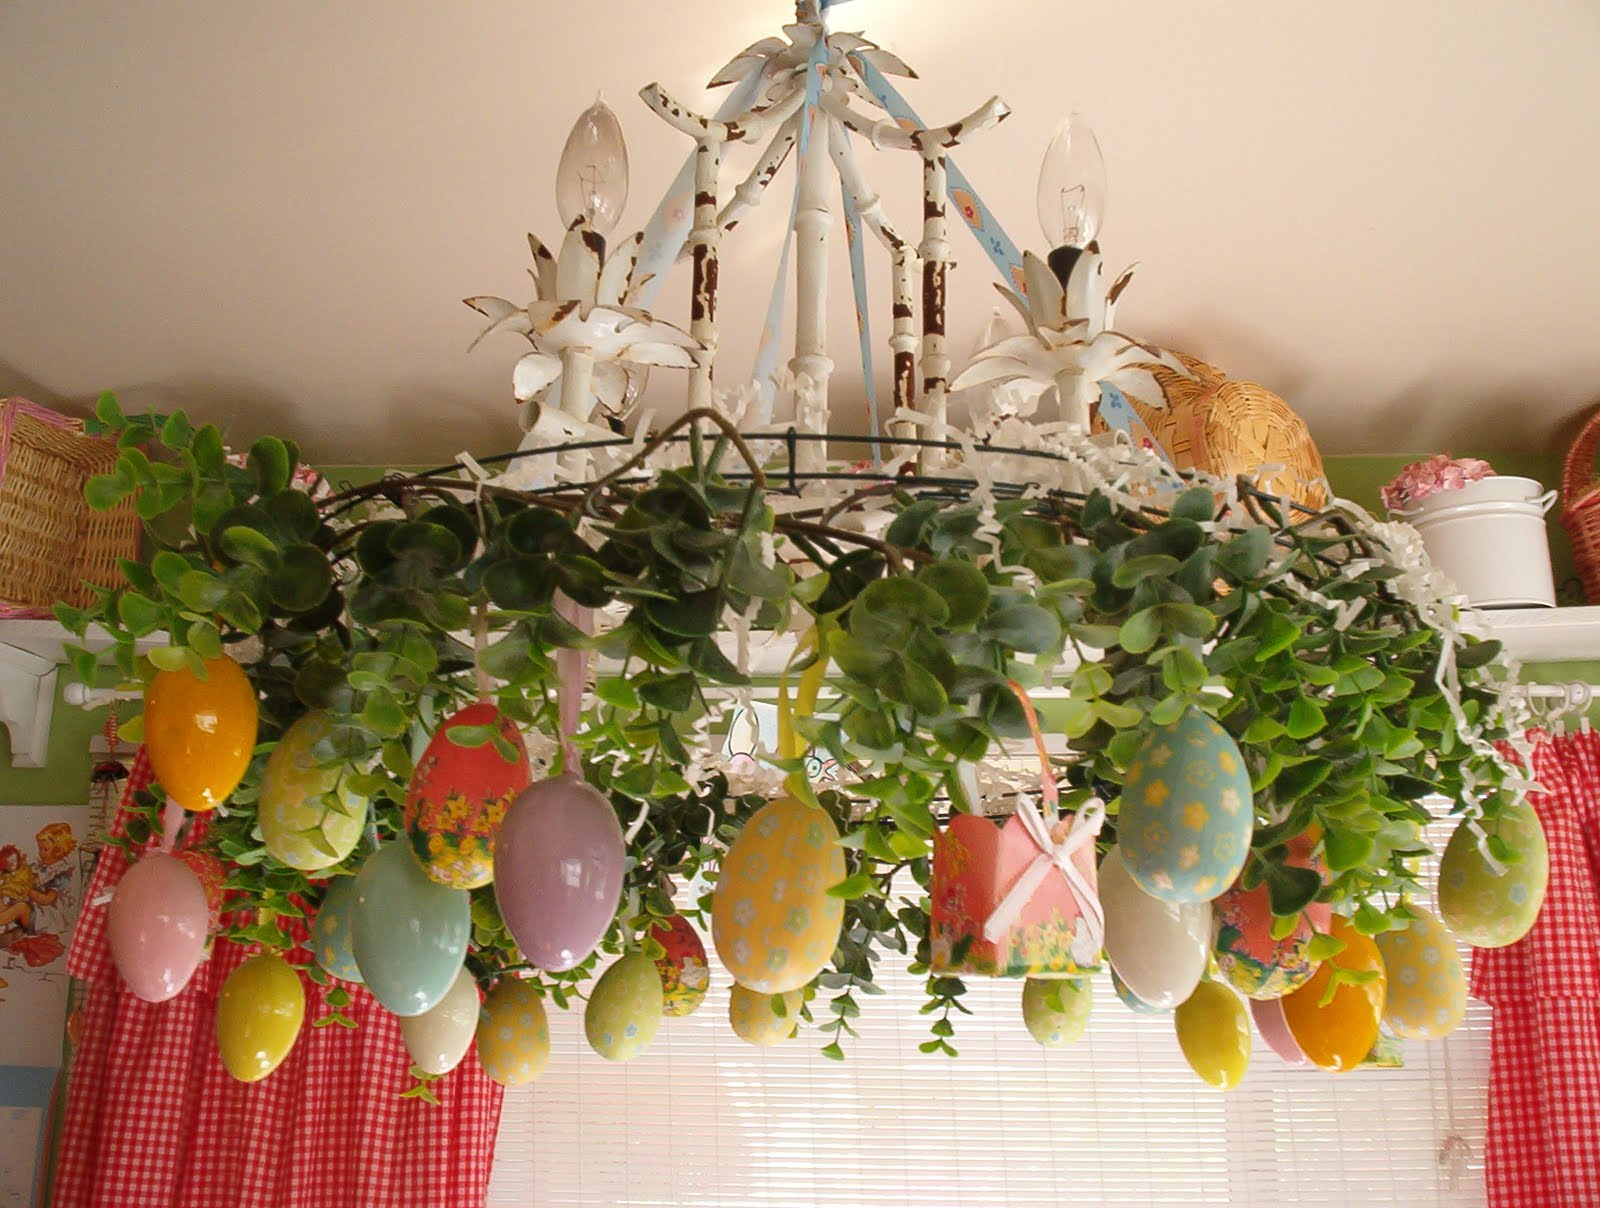 Easter decorations 2017 grasscloth wallpaper Decorations for the home